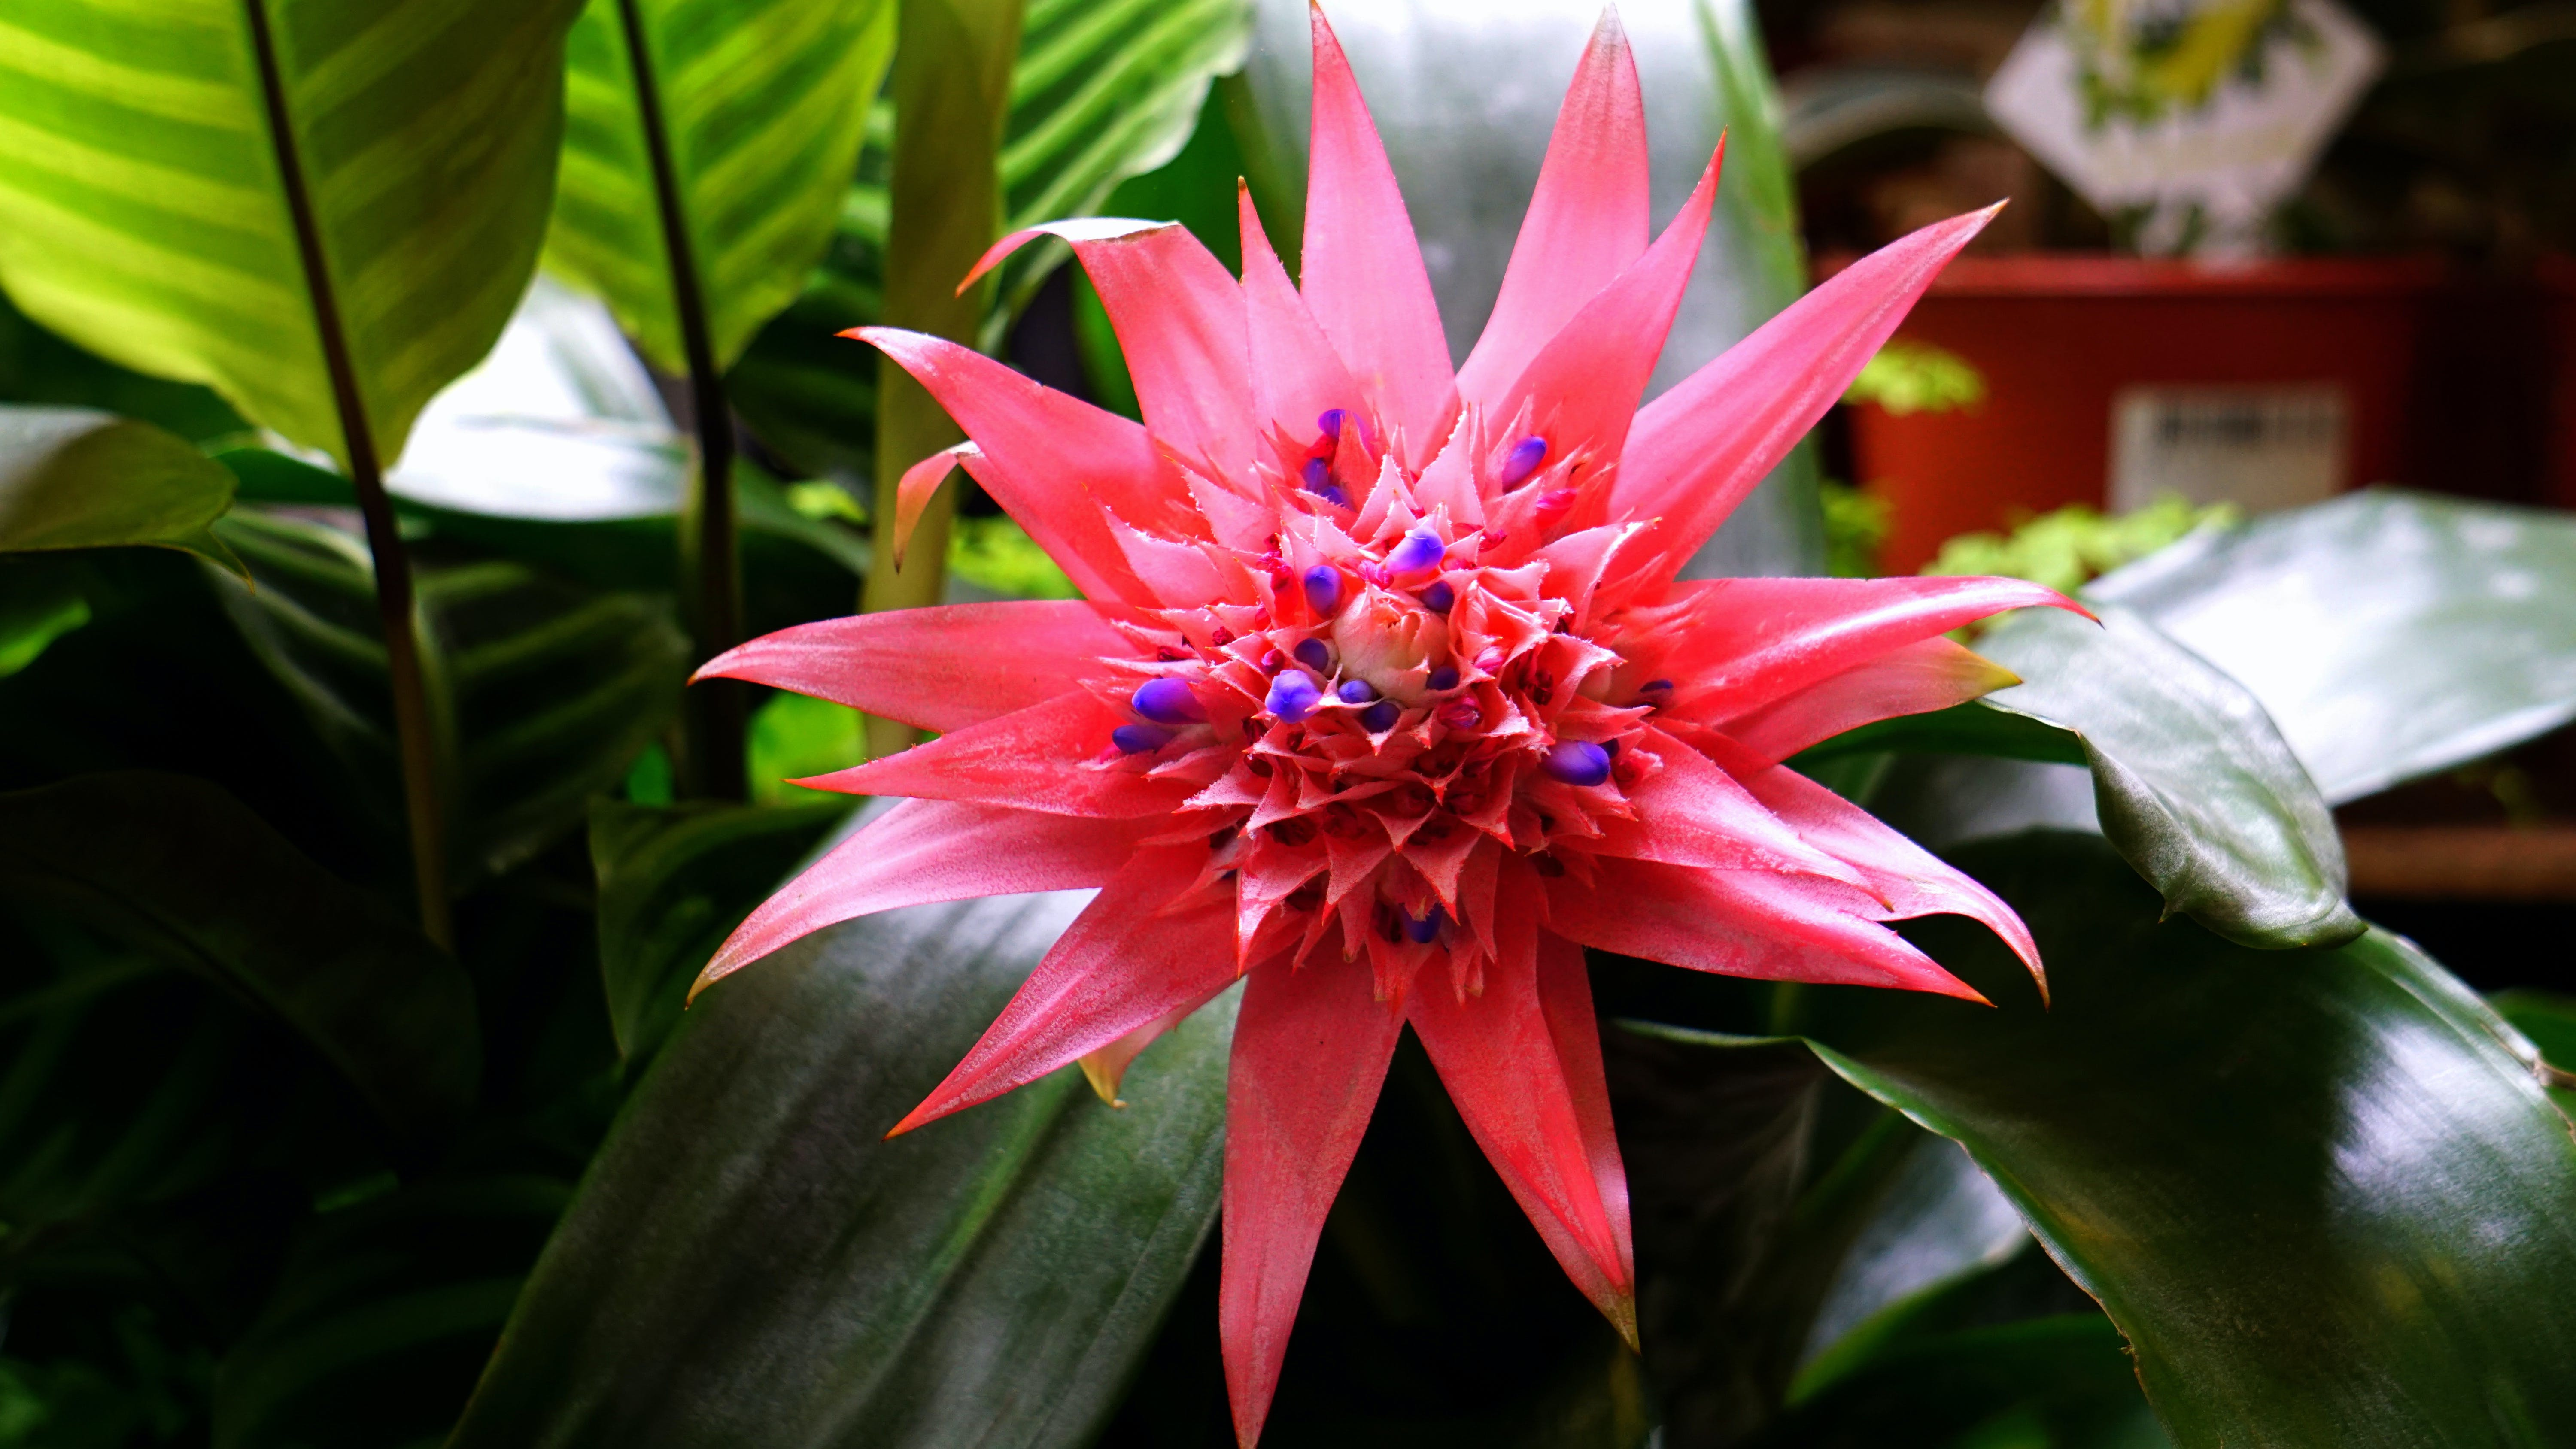 Pink Bromeliad Flower in Close-up Photography